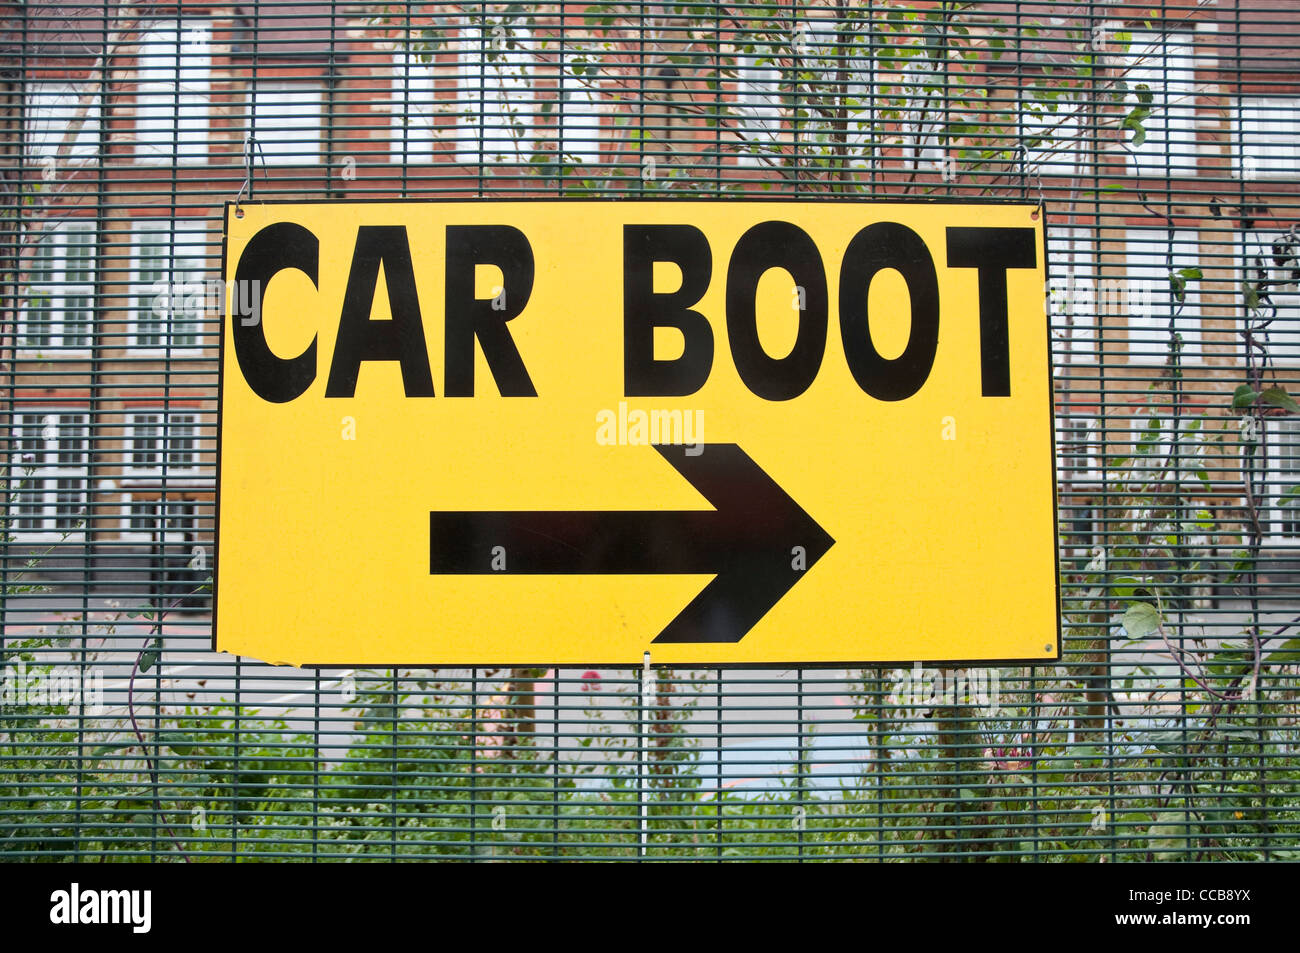 A yellow sign pointing to the Car Boot Sale, at Princess May Primary School, Stoke Newington, Hackney, London. - Stock Image